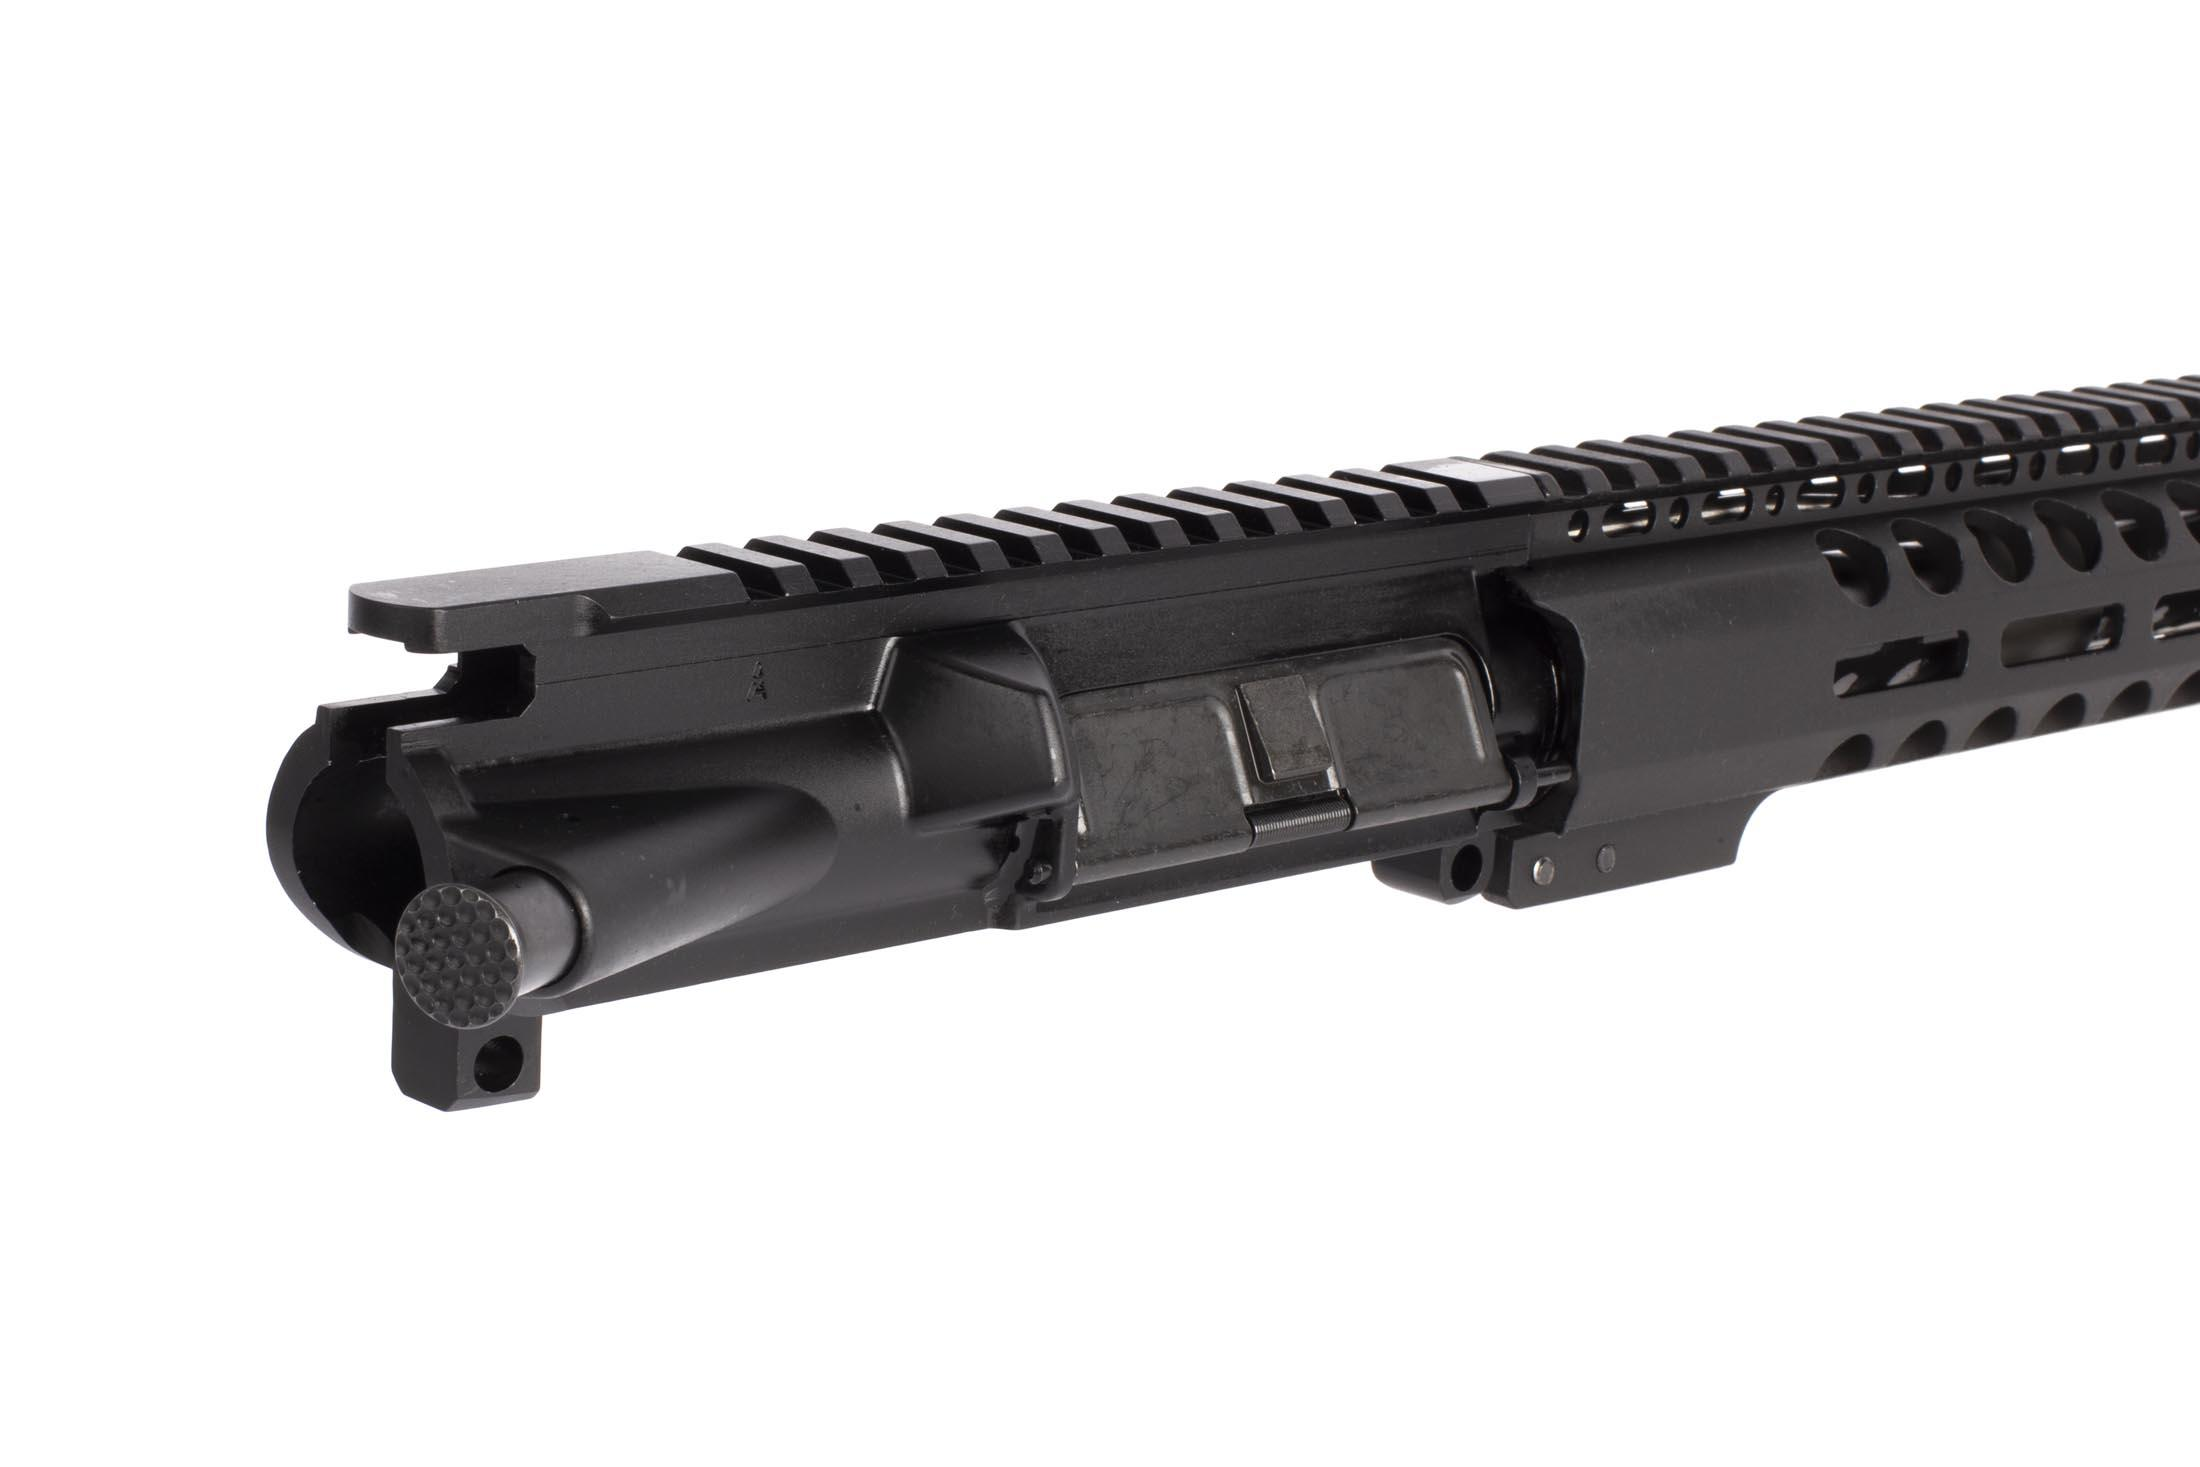 Radical Firearms M-LOK equipped 10.5in Barreled M4 upper in 300 BLK is ready for your favorite charging handle and BCG